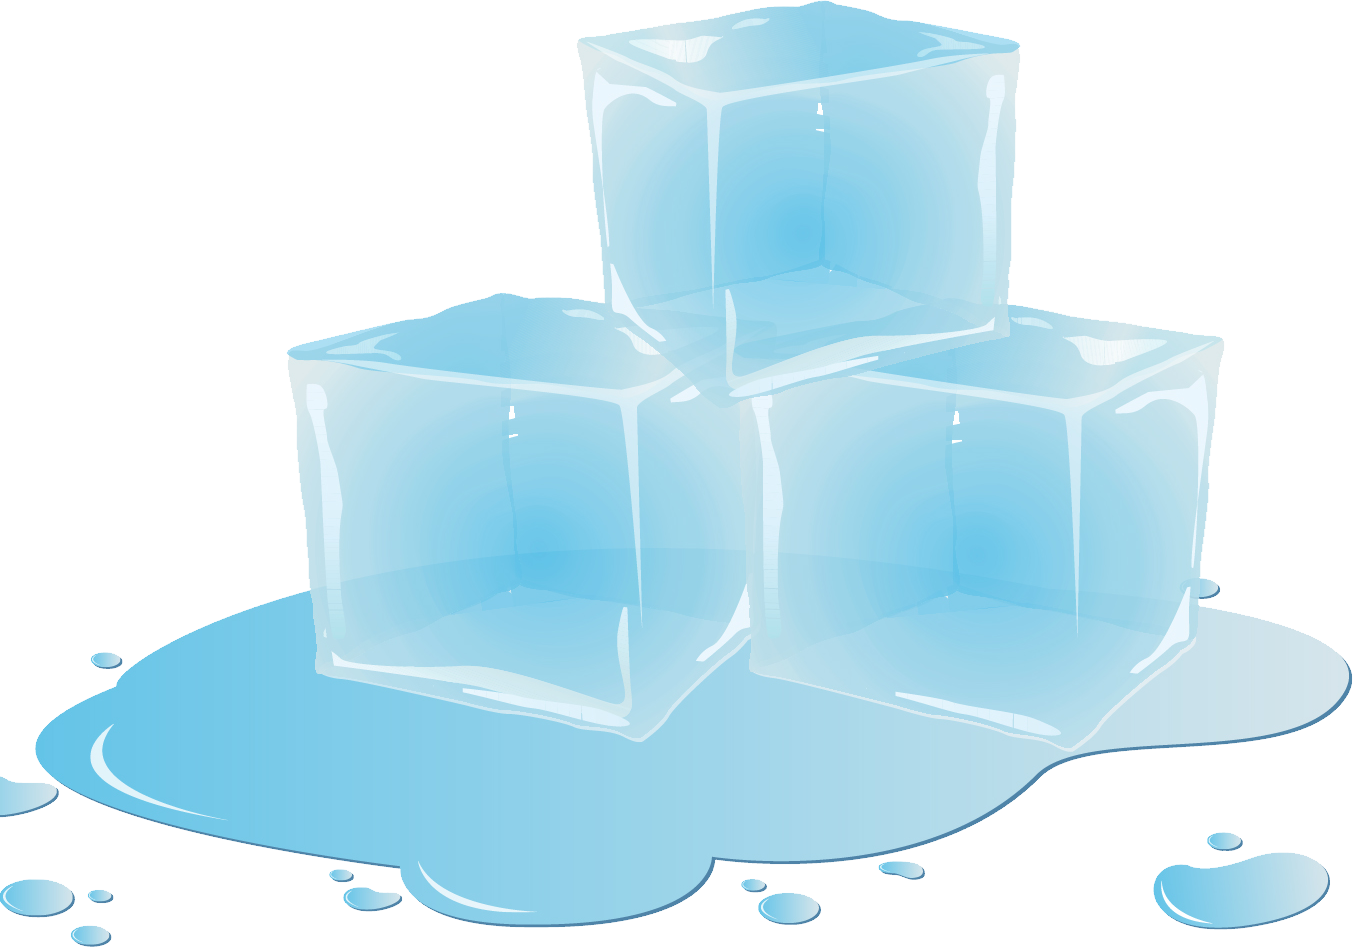 Clipart cube ice melting in the sun clip art transparent Ice cubes PNG image clip art transparent